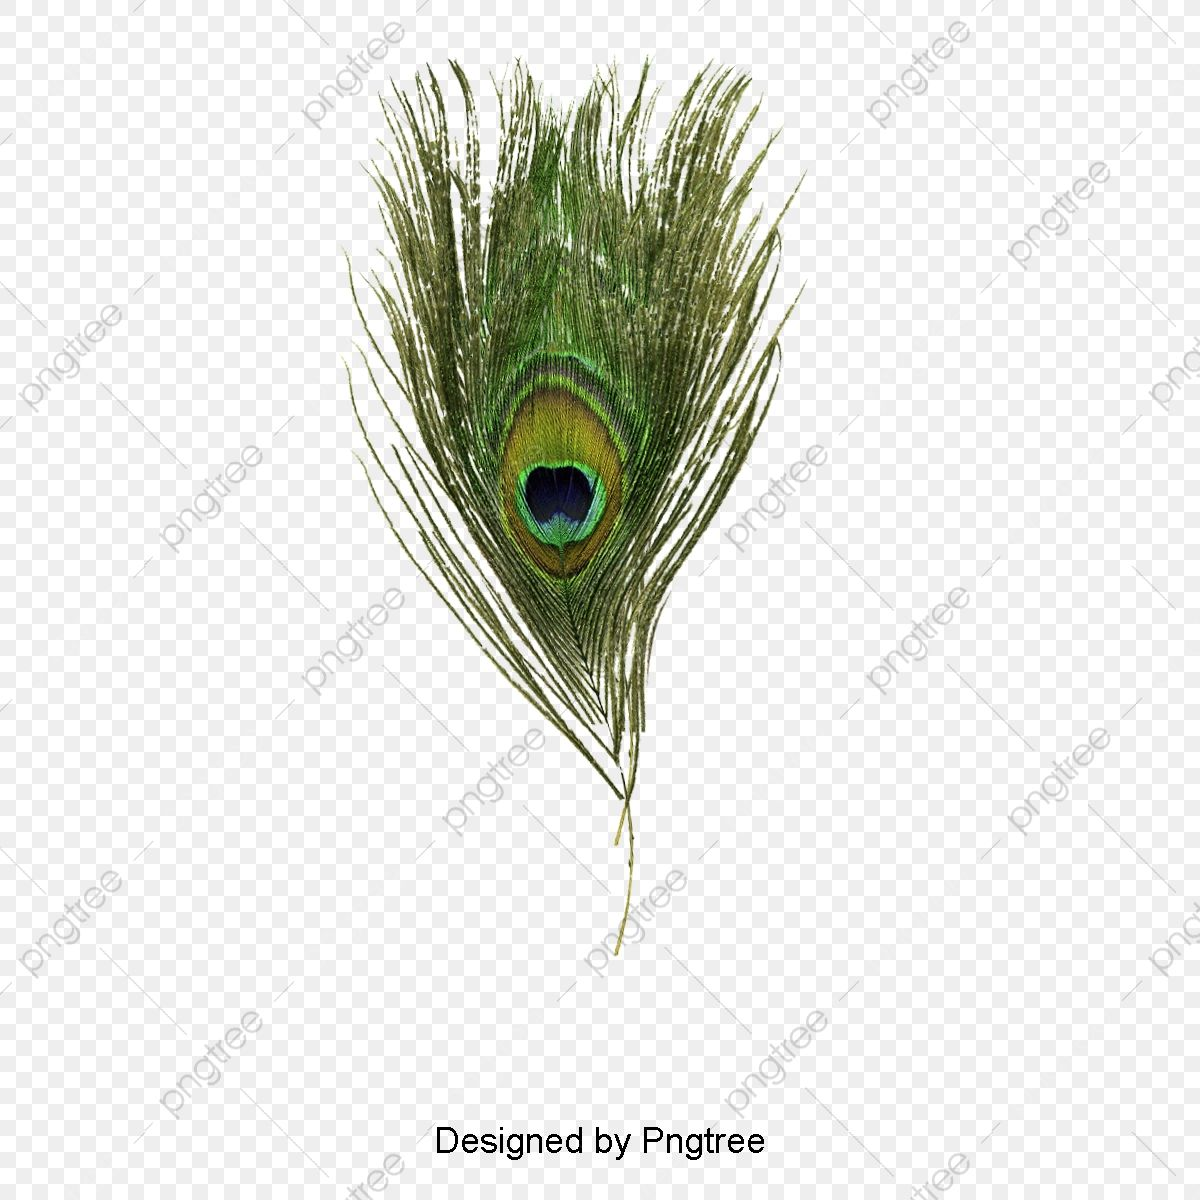 Peacock Feather Peacock Clipart Peacock Feather Png Transparent Clipart Image And Psd File For Free Download Peacock Feather Clipart Images Clip Art